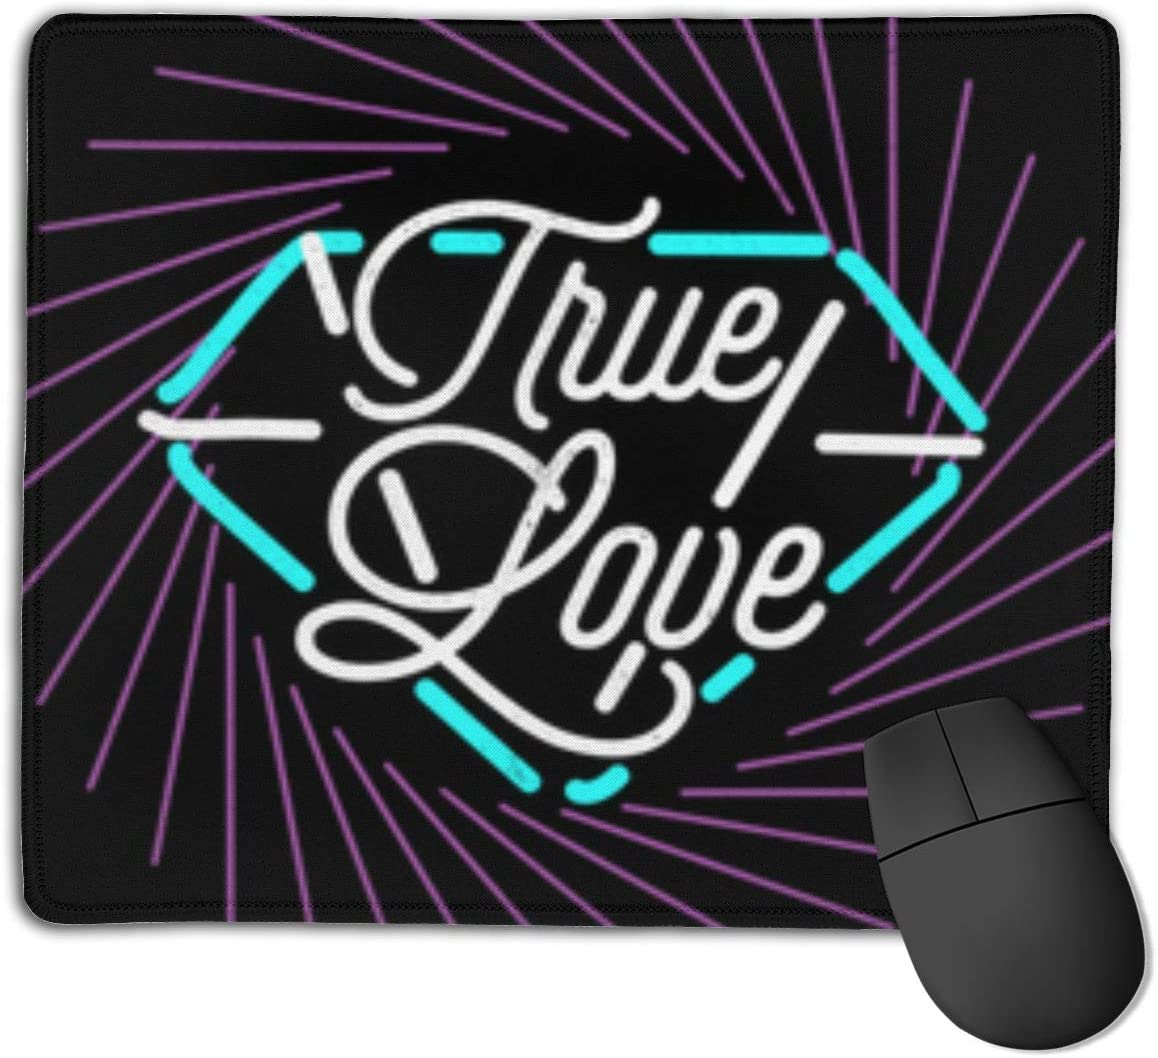 True Love Customized Designs Non-Slip Rubber Base Gaming Mouse Pads for Mac,22cm×18cm, Pc, Computers. Ideal for Working Or Game